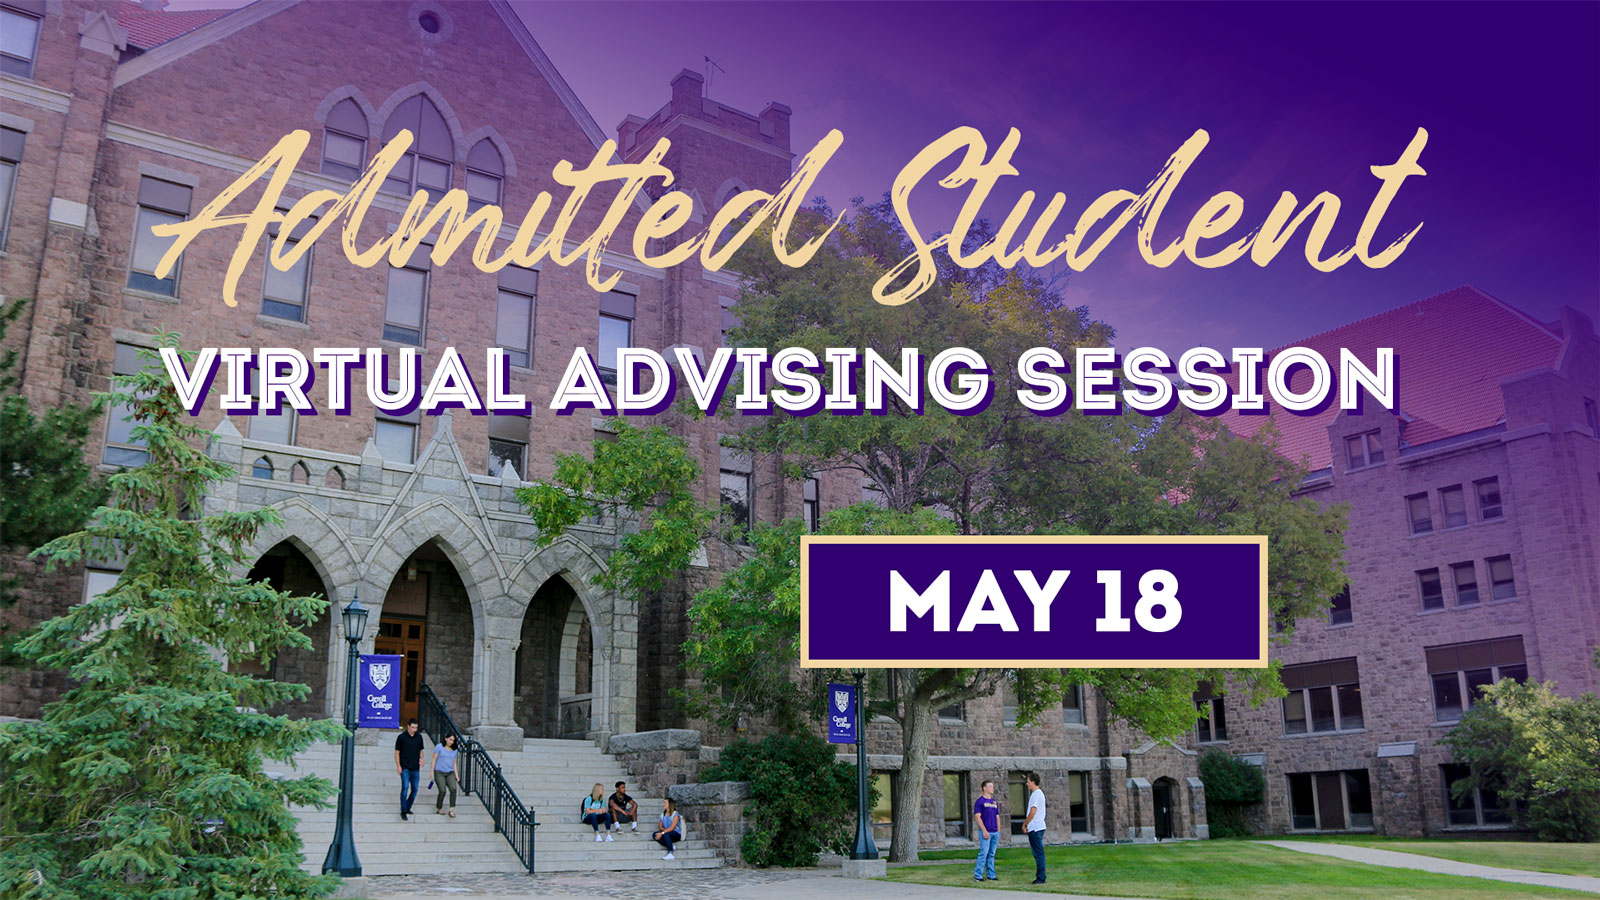 Admitted Student Virtual Advising Session - May 18